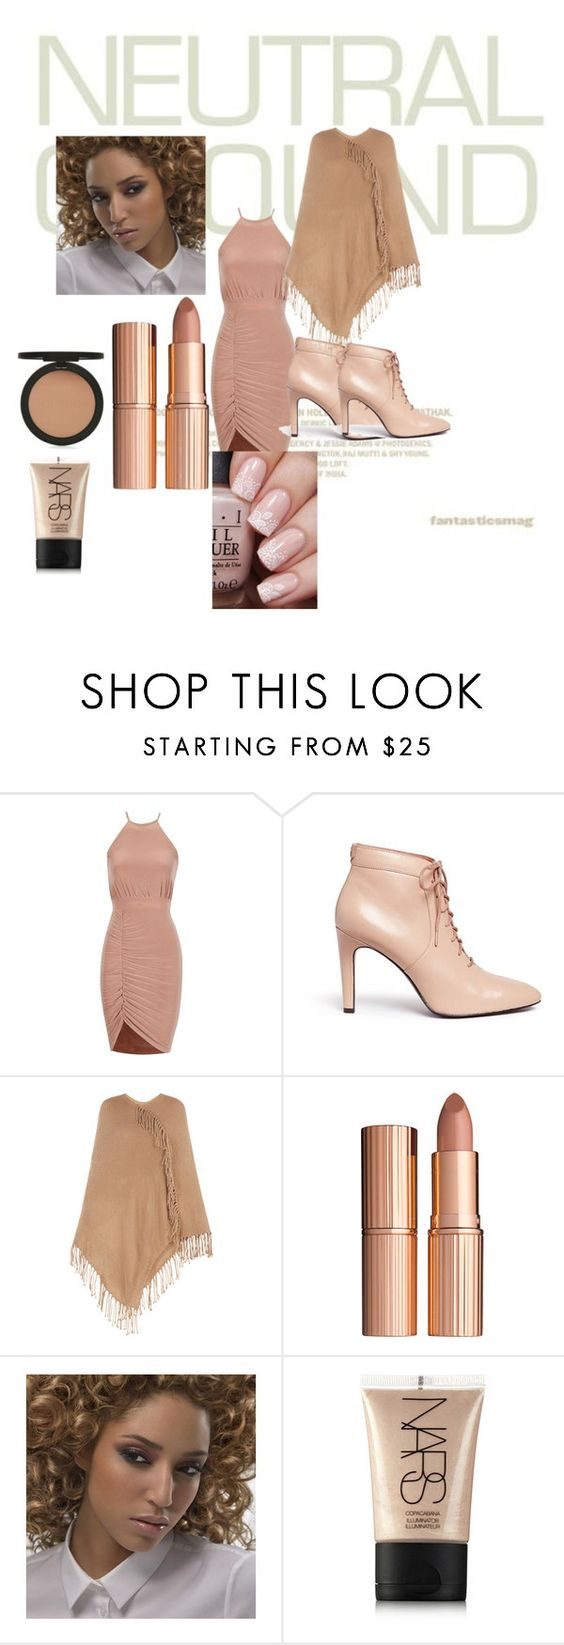 """""""Untitled #6"""" by kadzorr ❤ liked on Polyvore featuring Opening Ceremony, BCBGMAXAZRIA, Charlotte Tilbury, NARS Cosmetics and Topshop"""